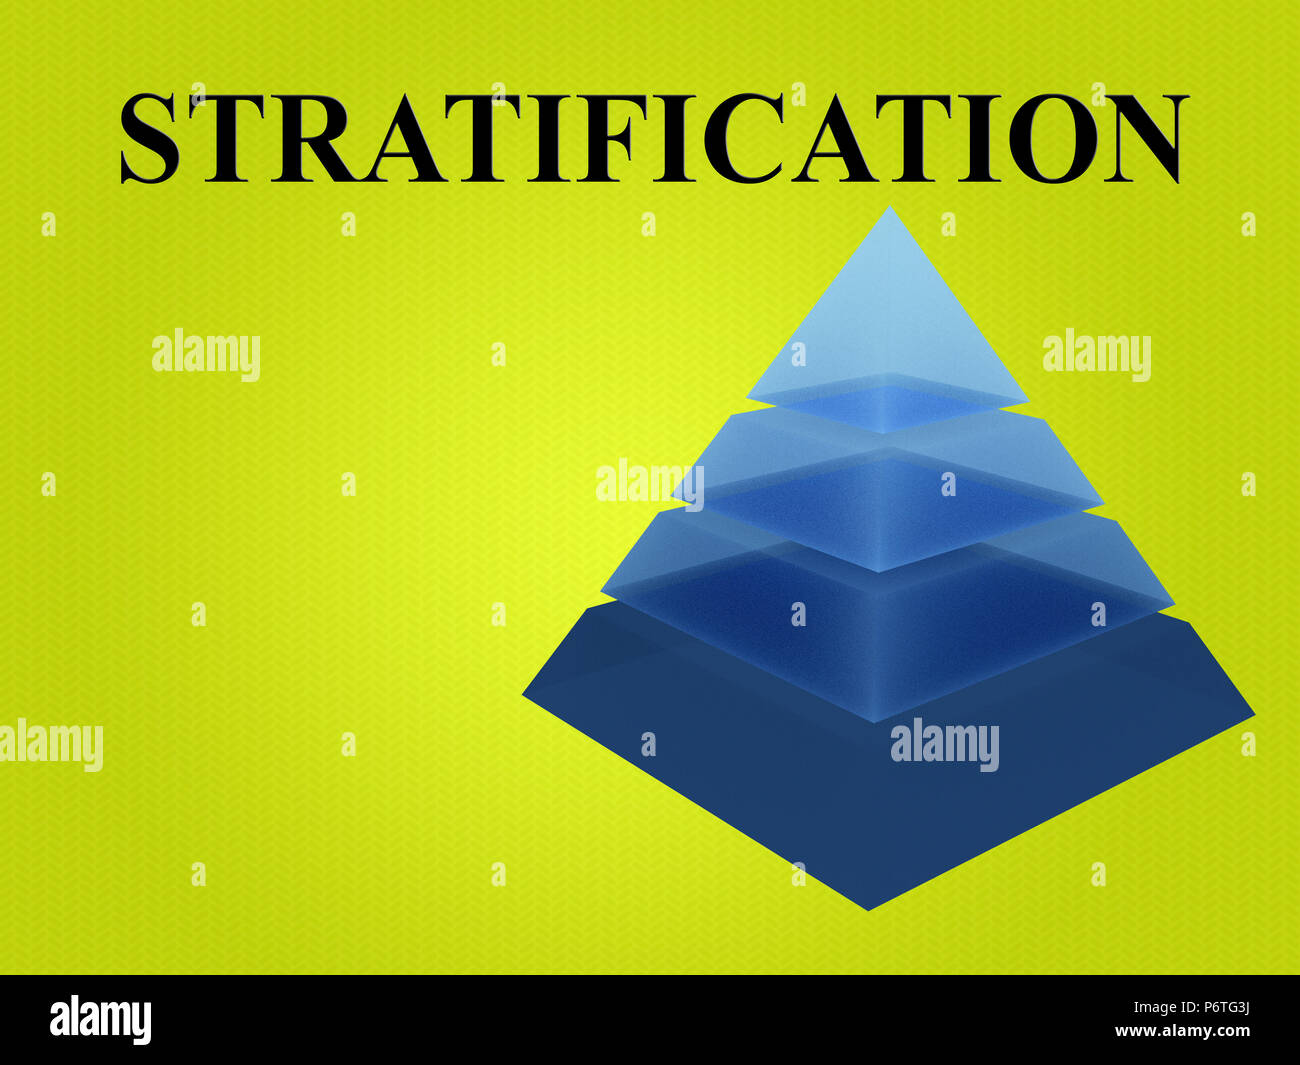 3d illustration of stratification script with sliced pyramid on